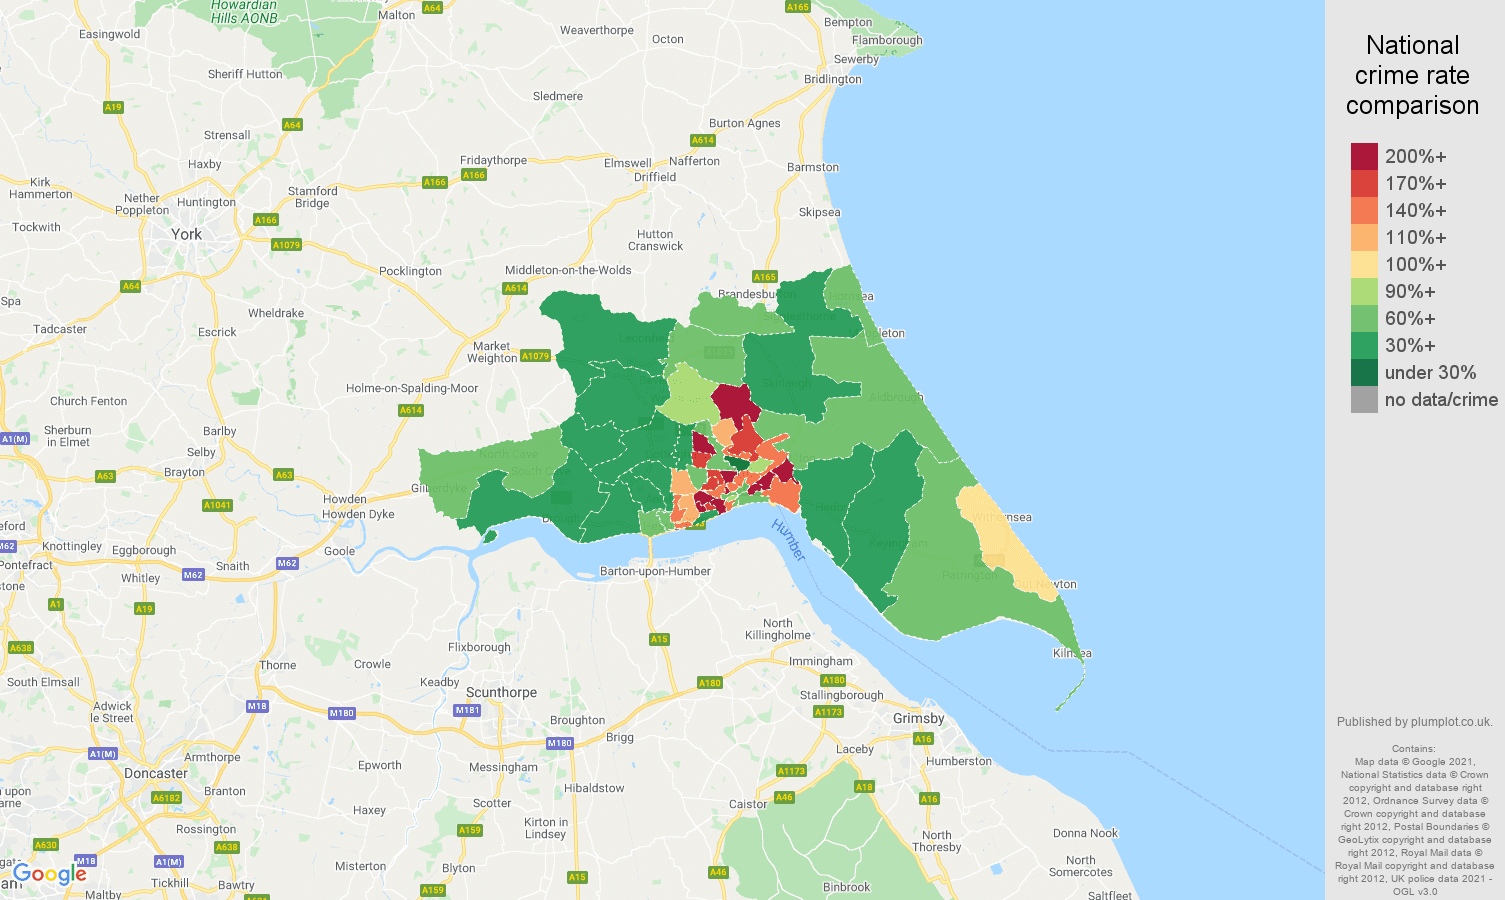 Hull violent crime rate comparison map